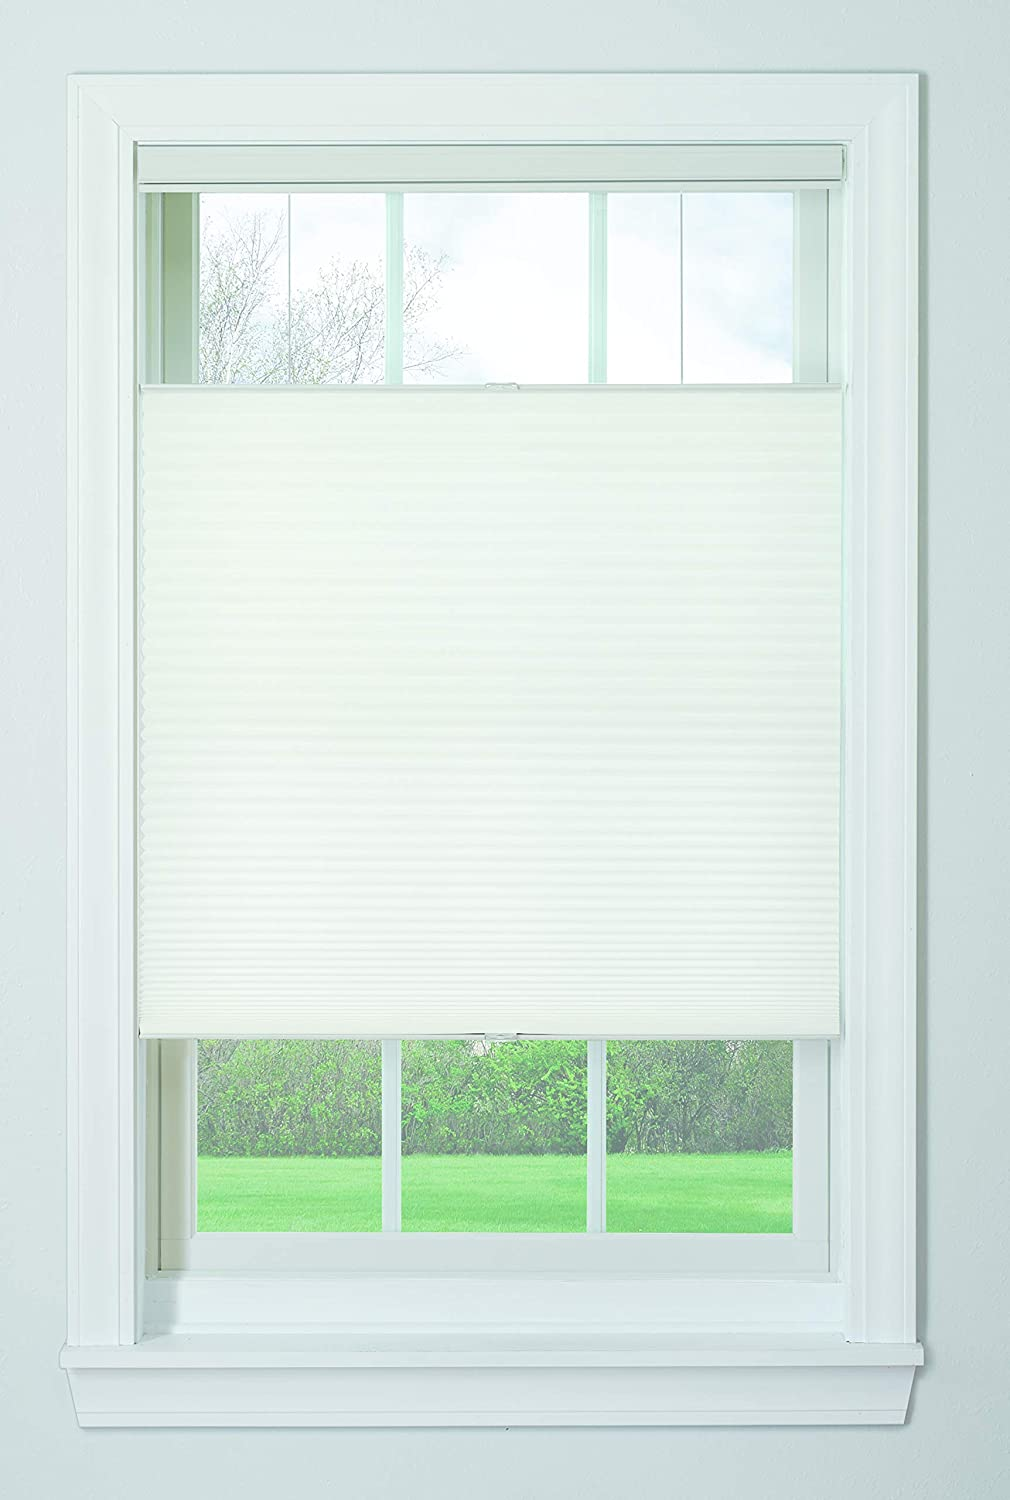 Amazon Com Bali Blinds Bottom Up Top Down Cordless Cellular Shades Window Covering 29 X 72 White Home Kitchen